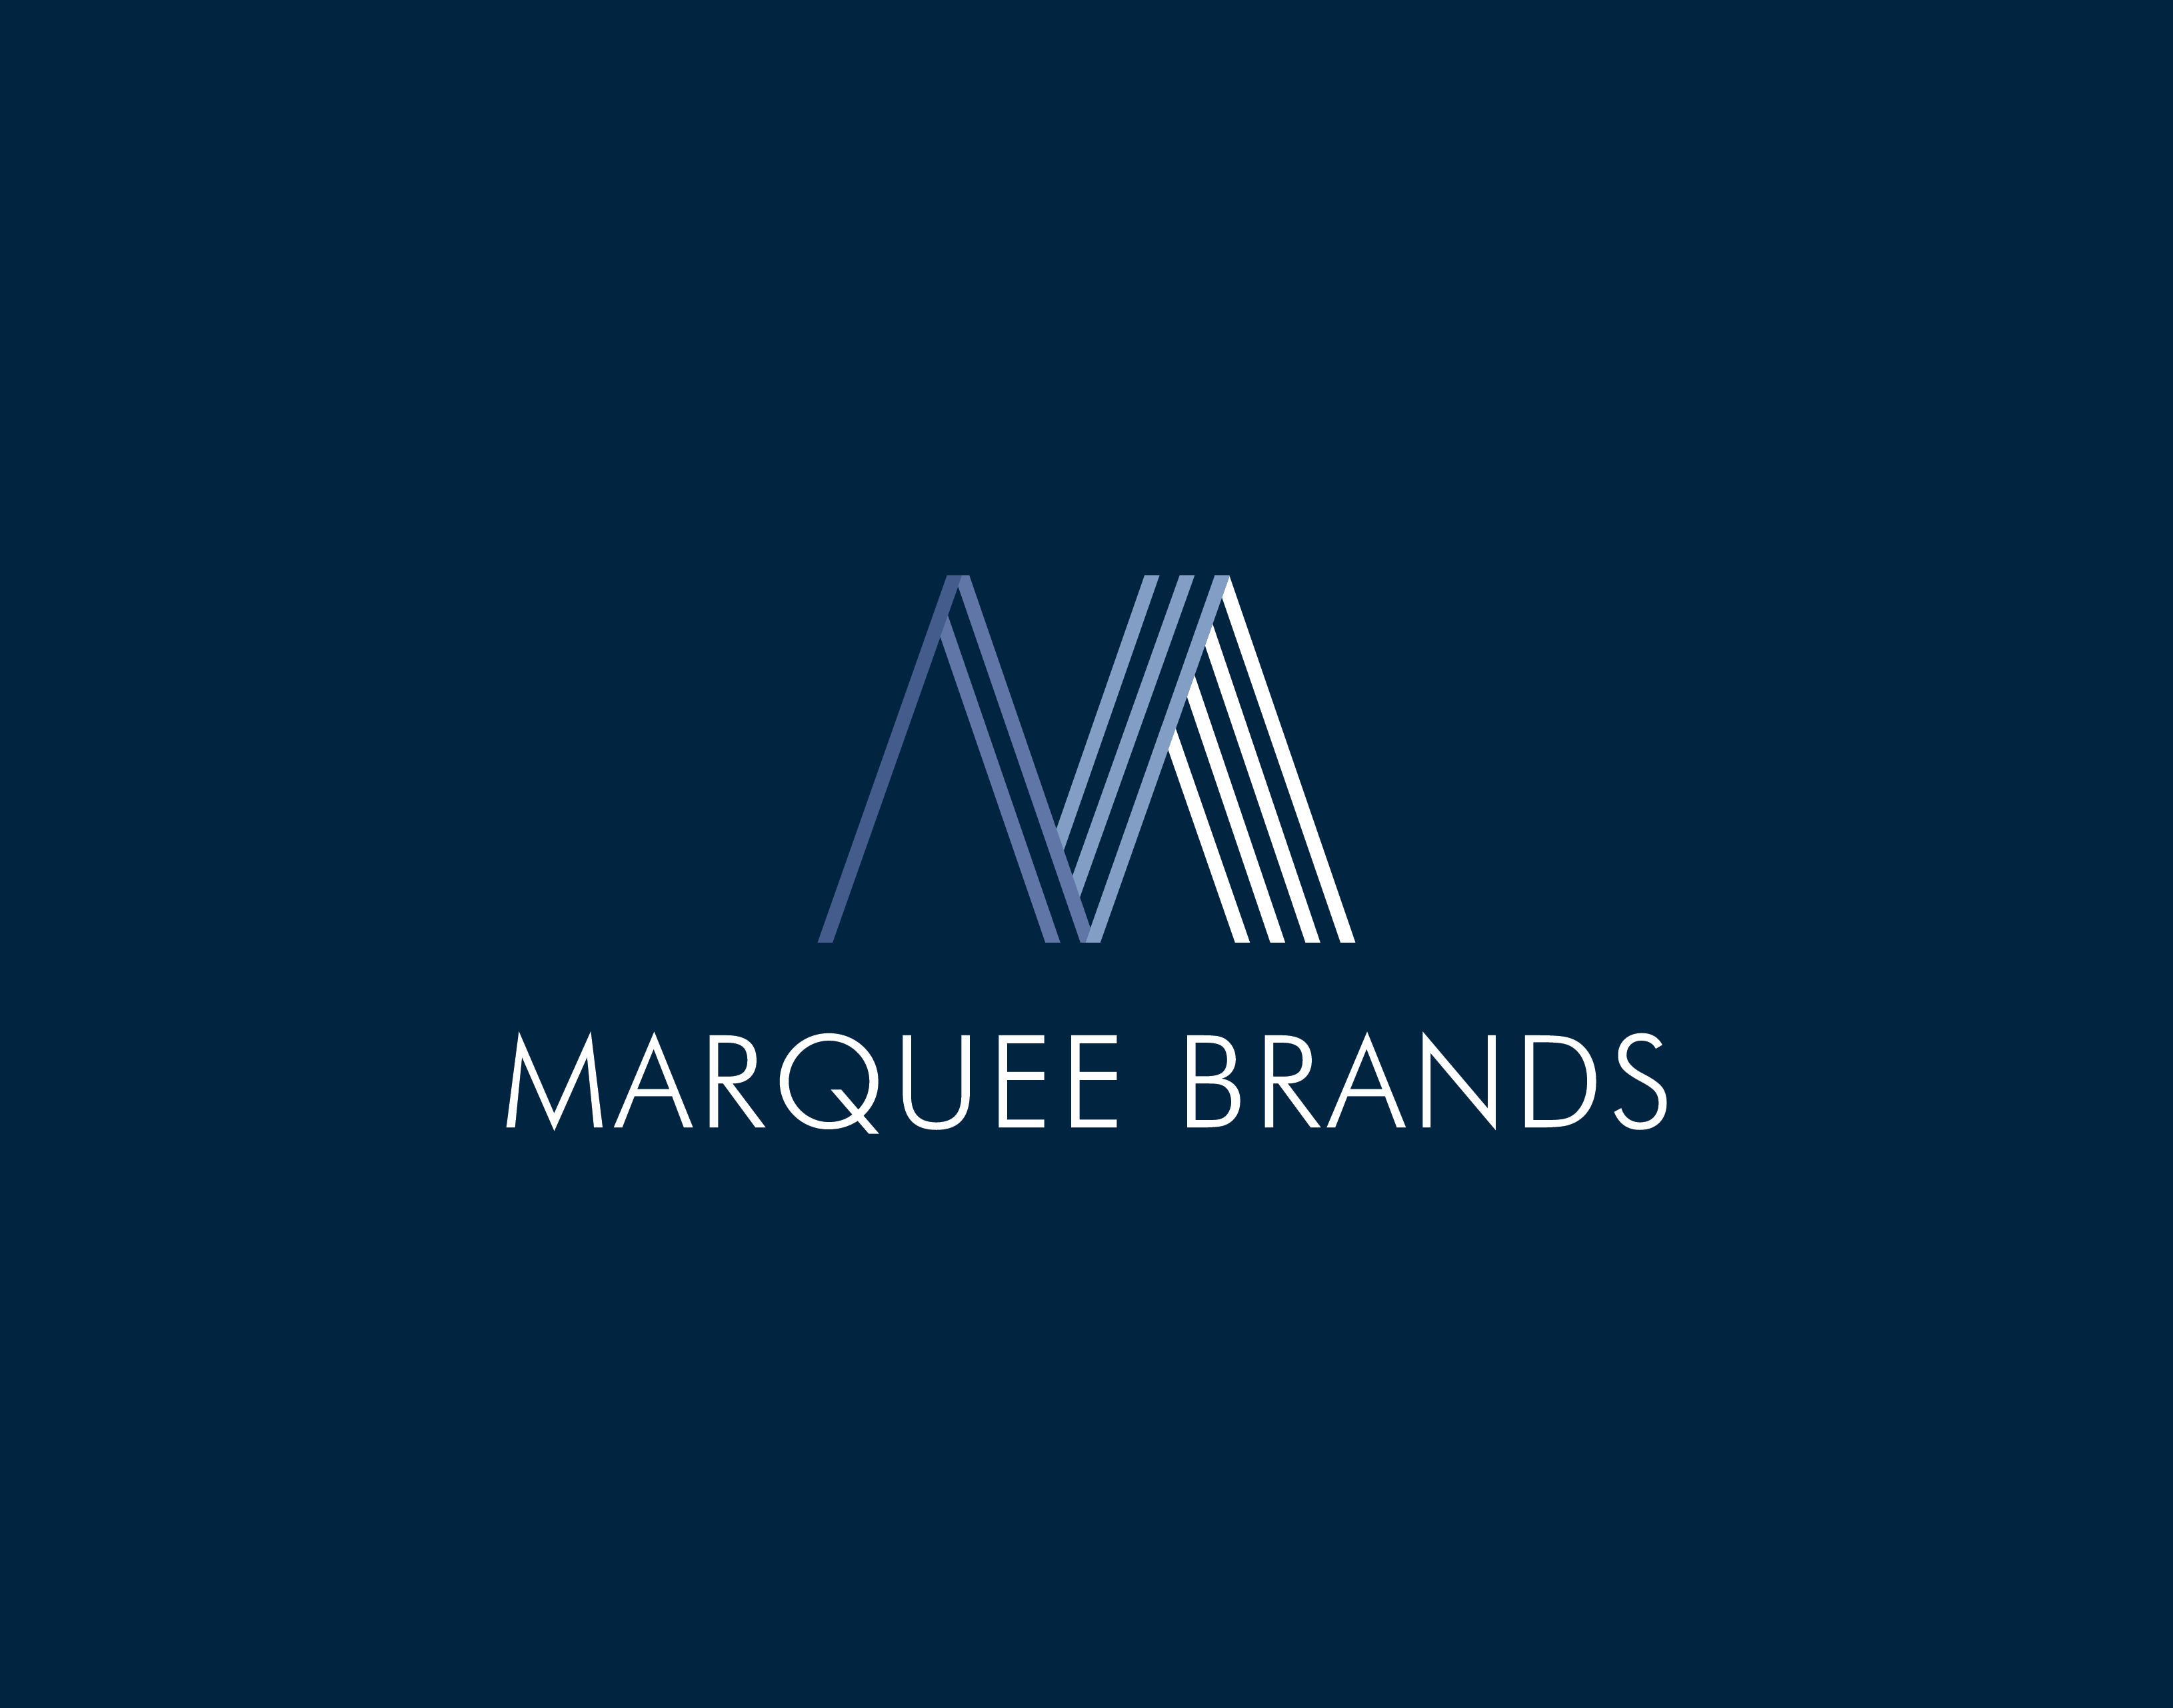 Marquee blue